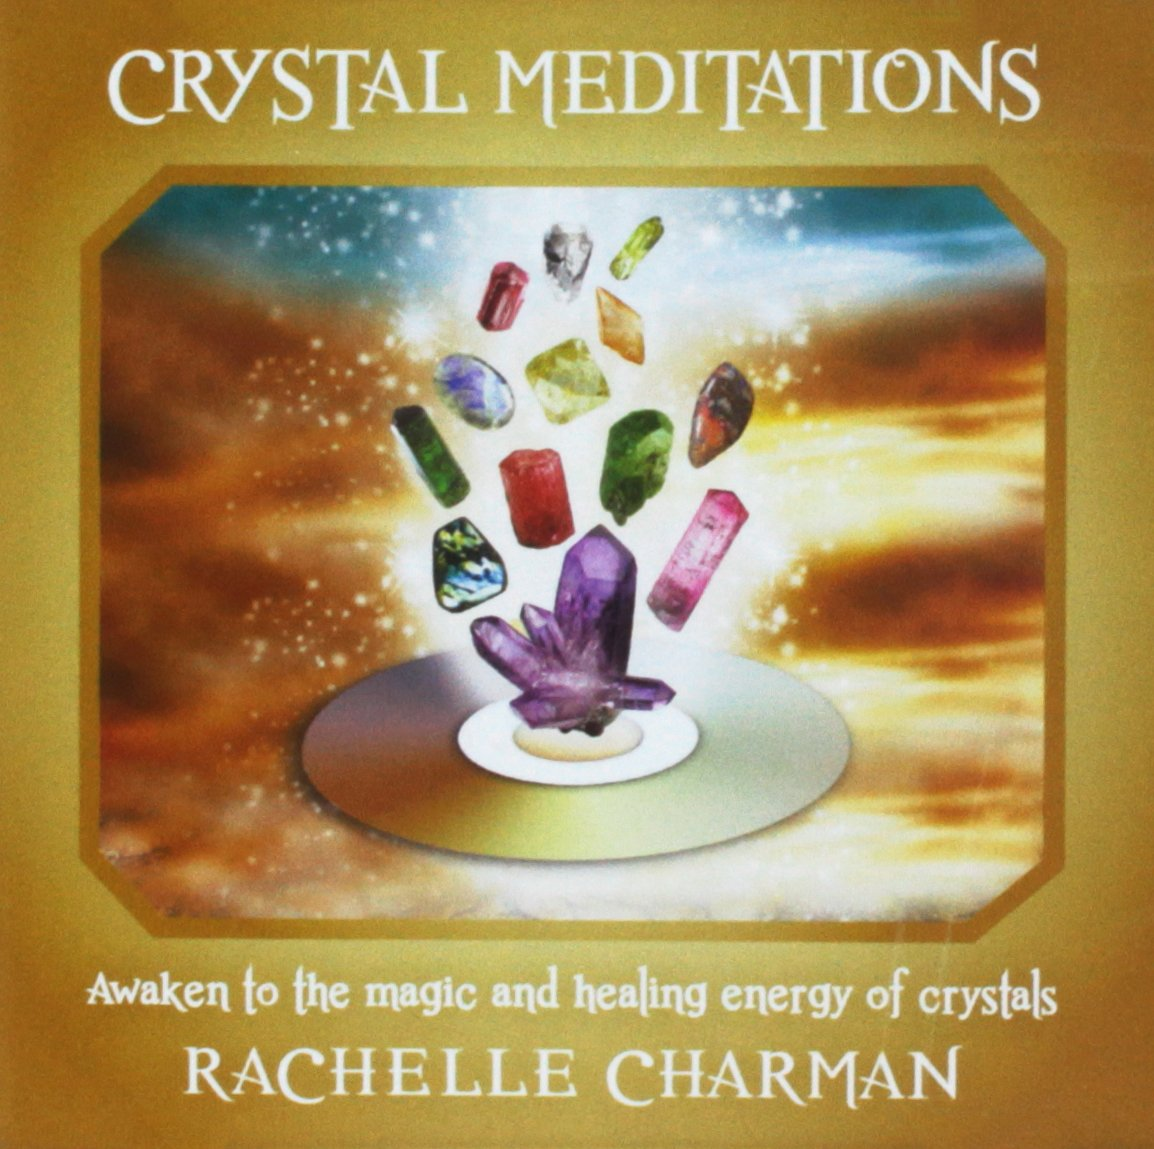 Crystal Meditations CD: Awaken to the Magic and healing energy of Crystals